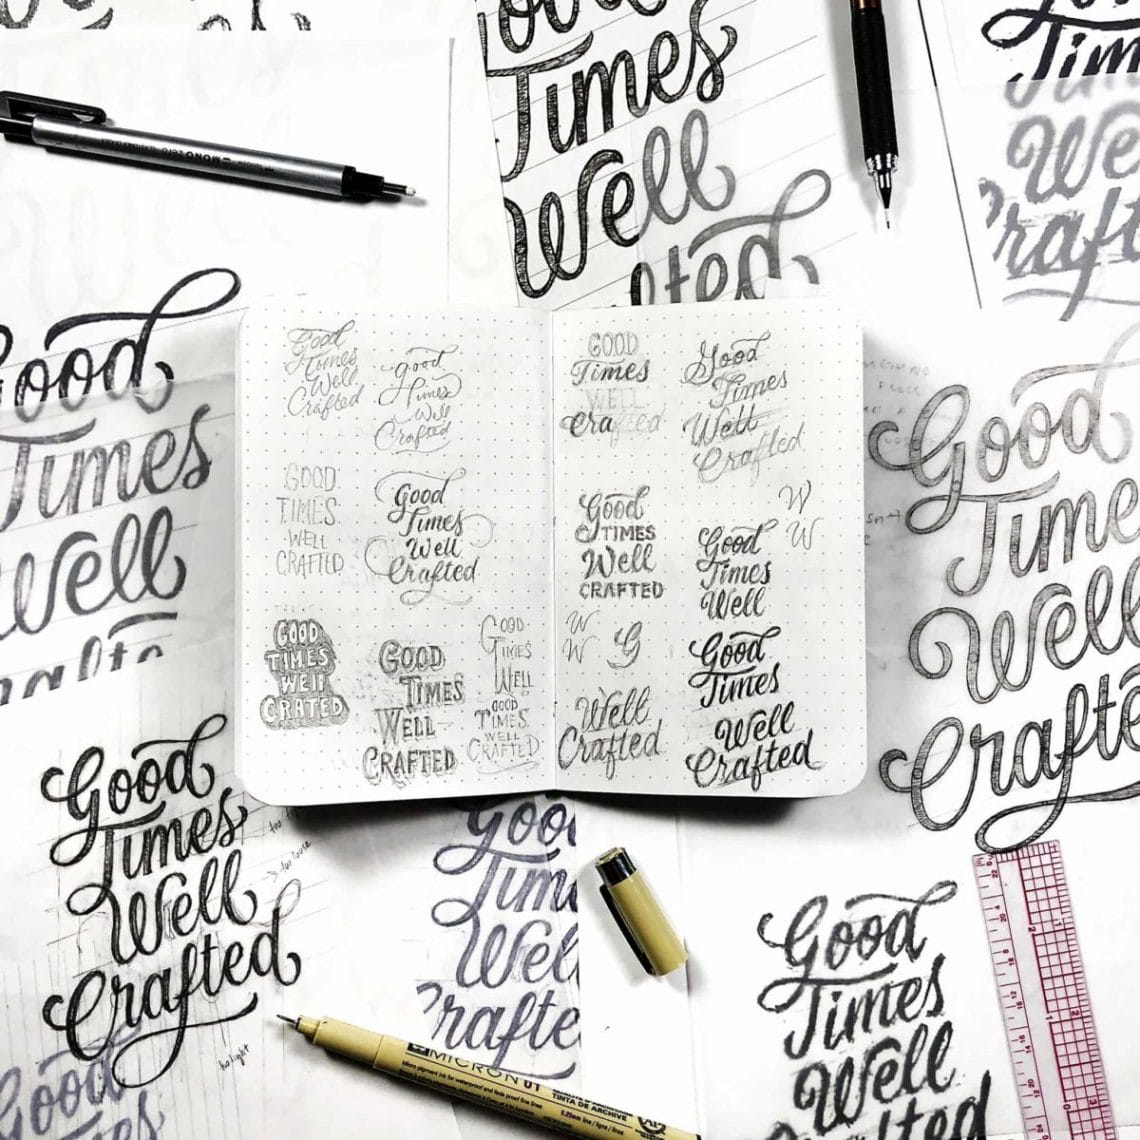 6 tips for growing your instagram lettering audience | lettering daily